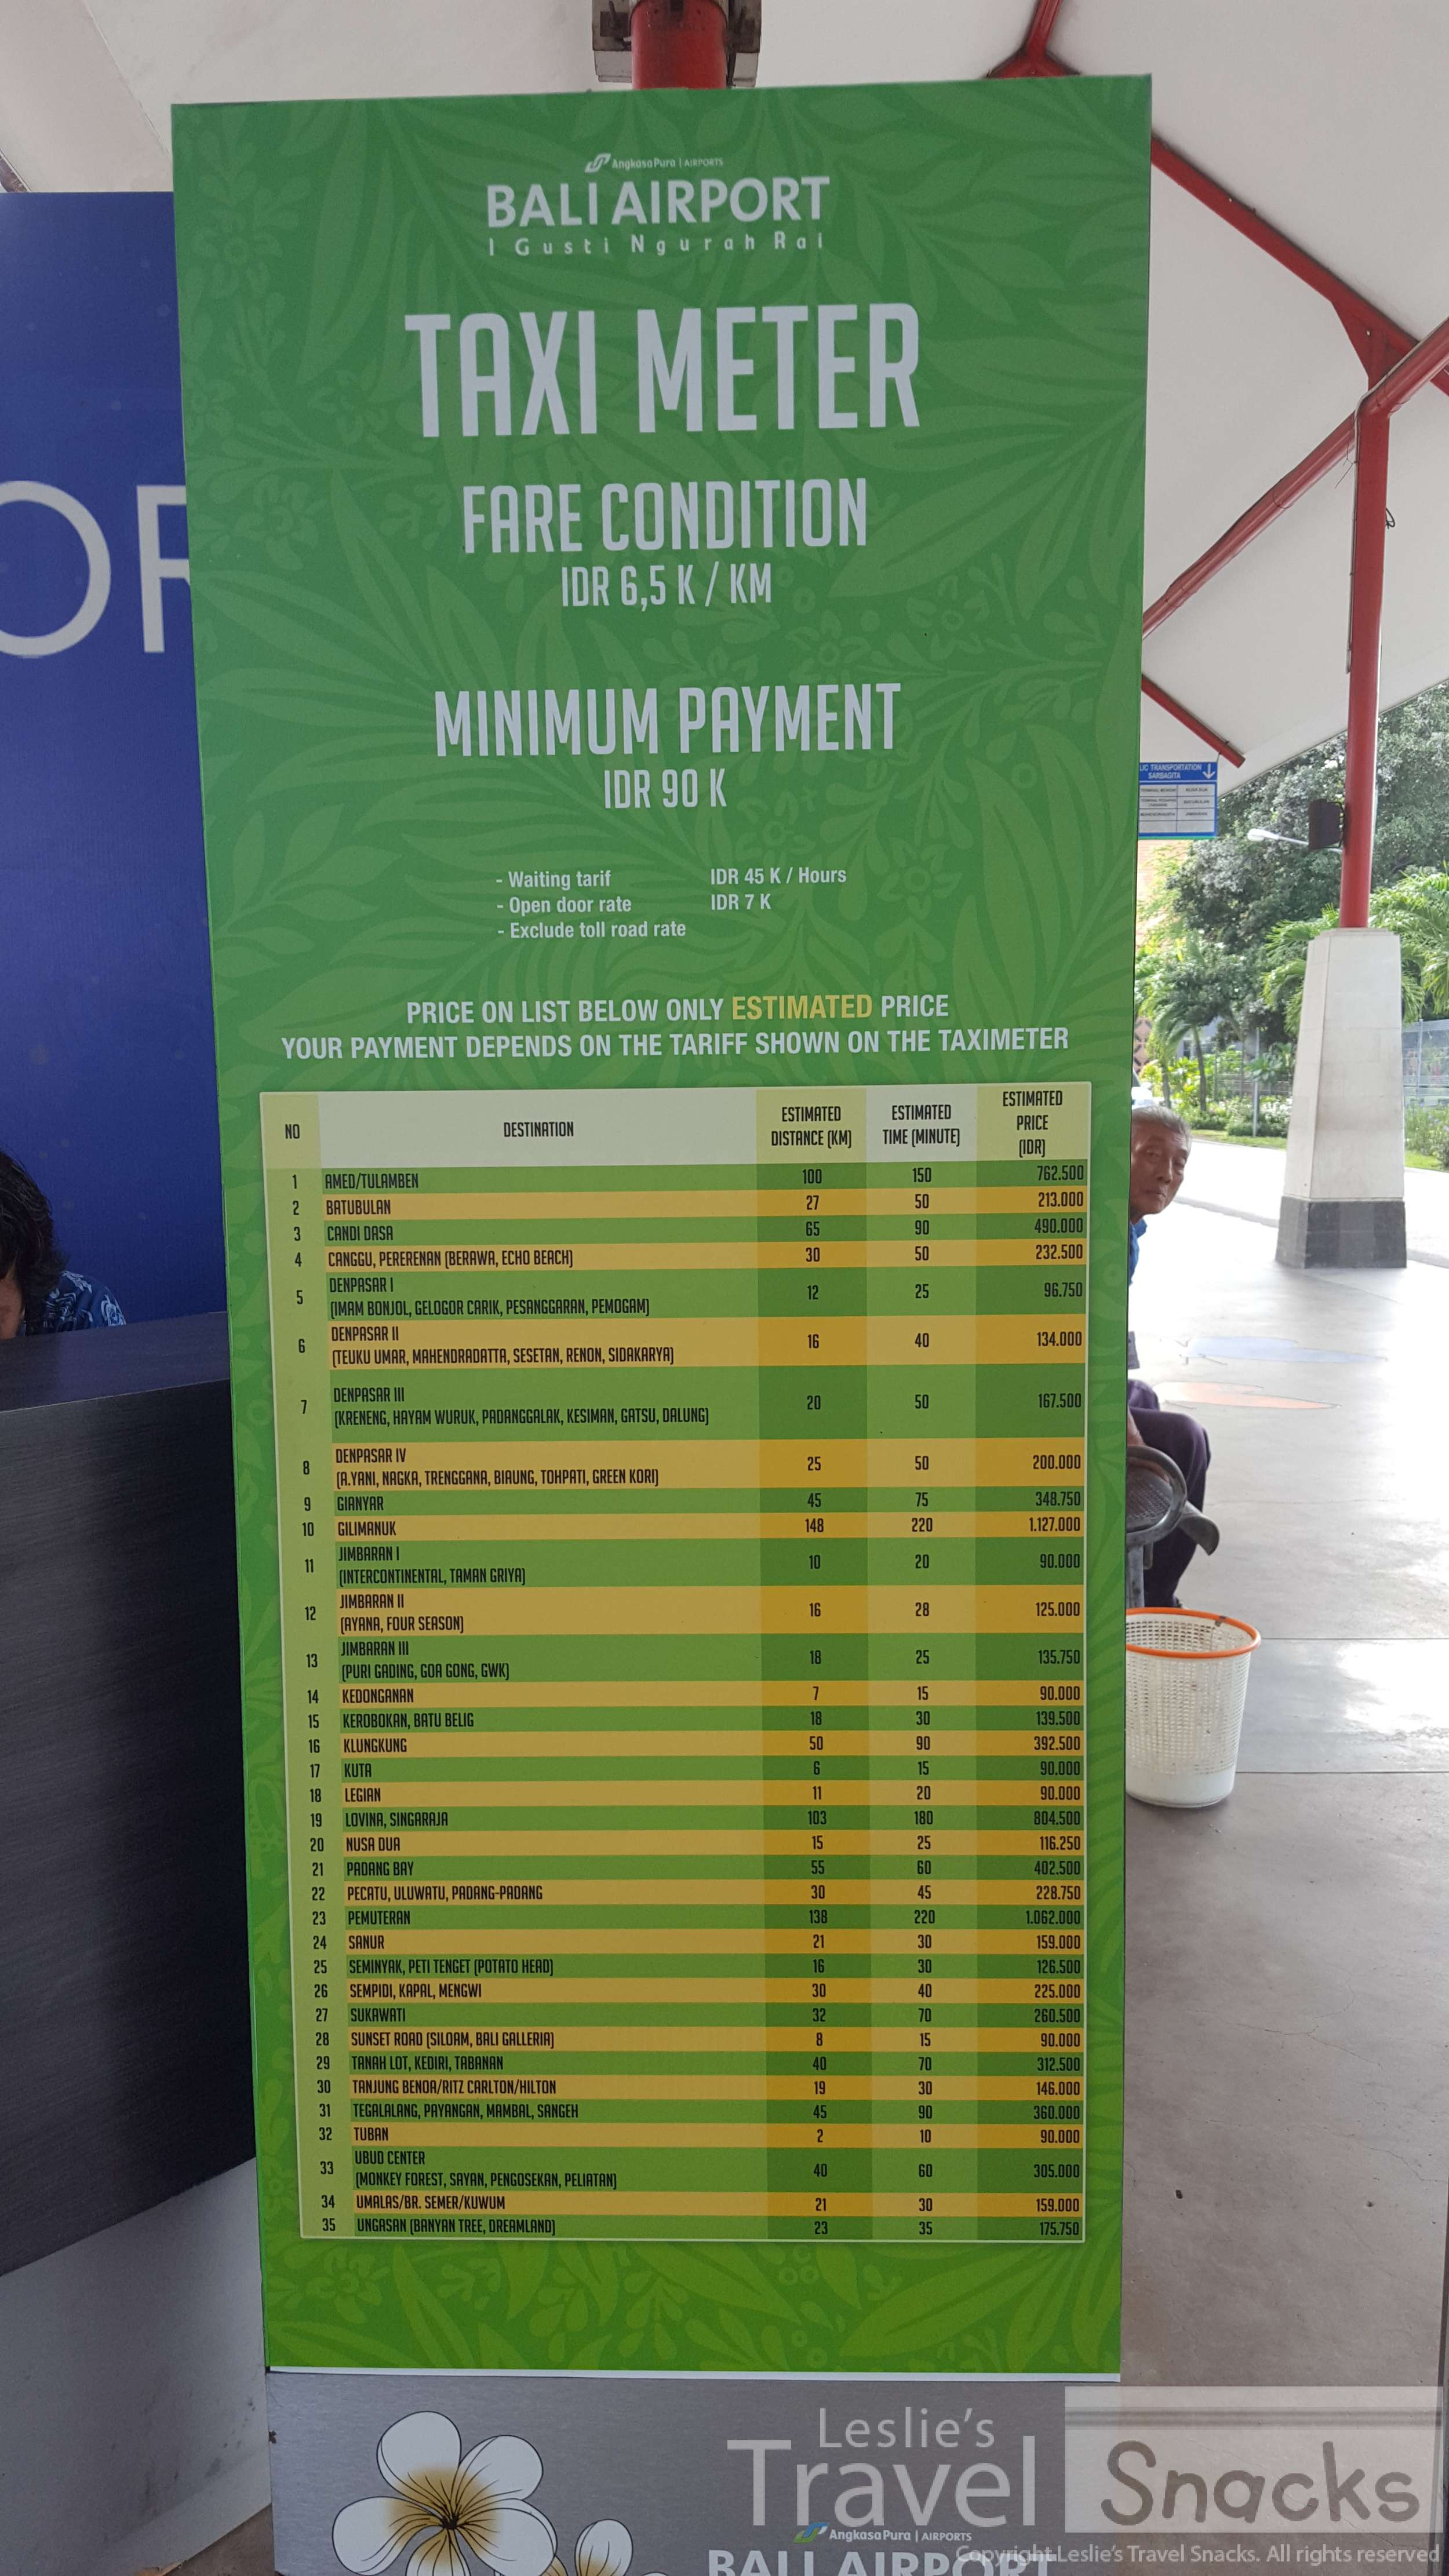 Posted airport taxi rates. Zoom in for prices.